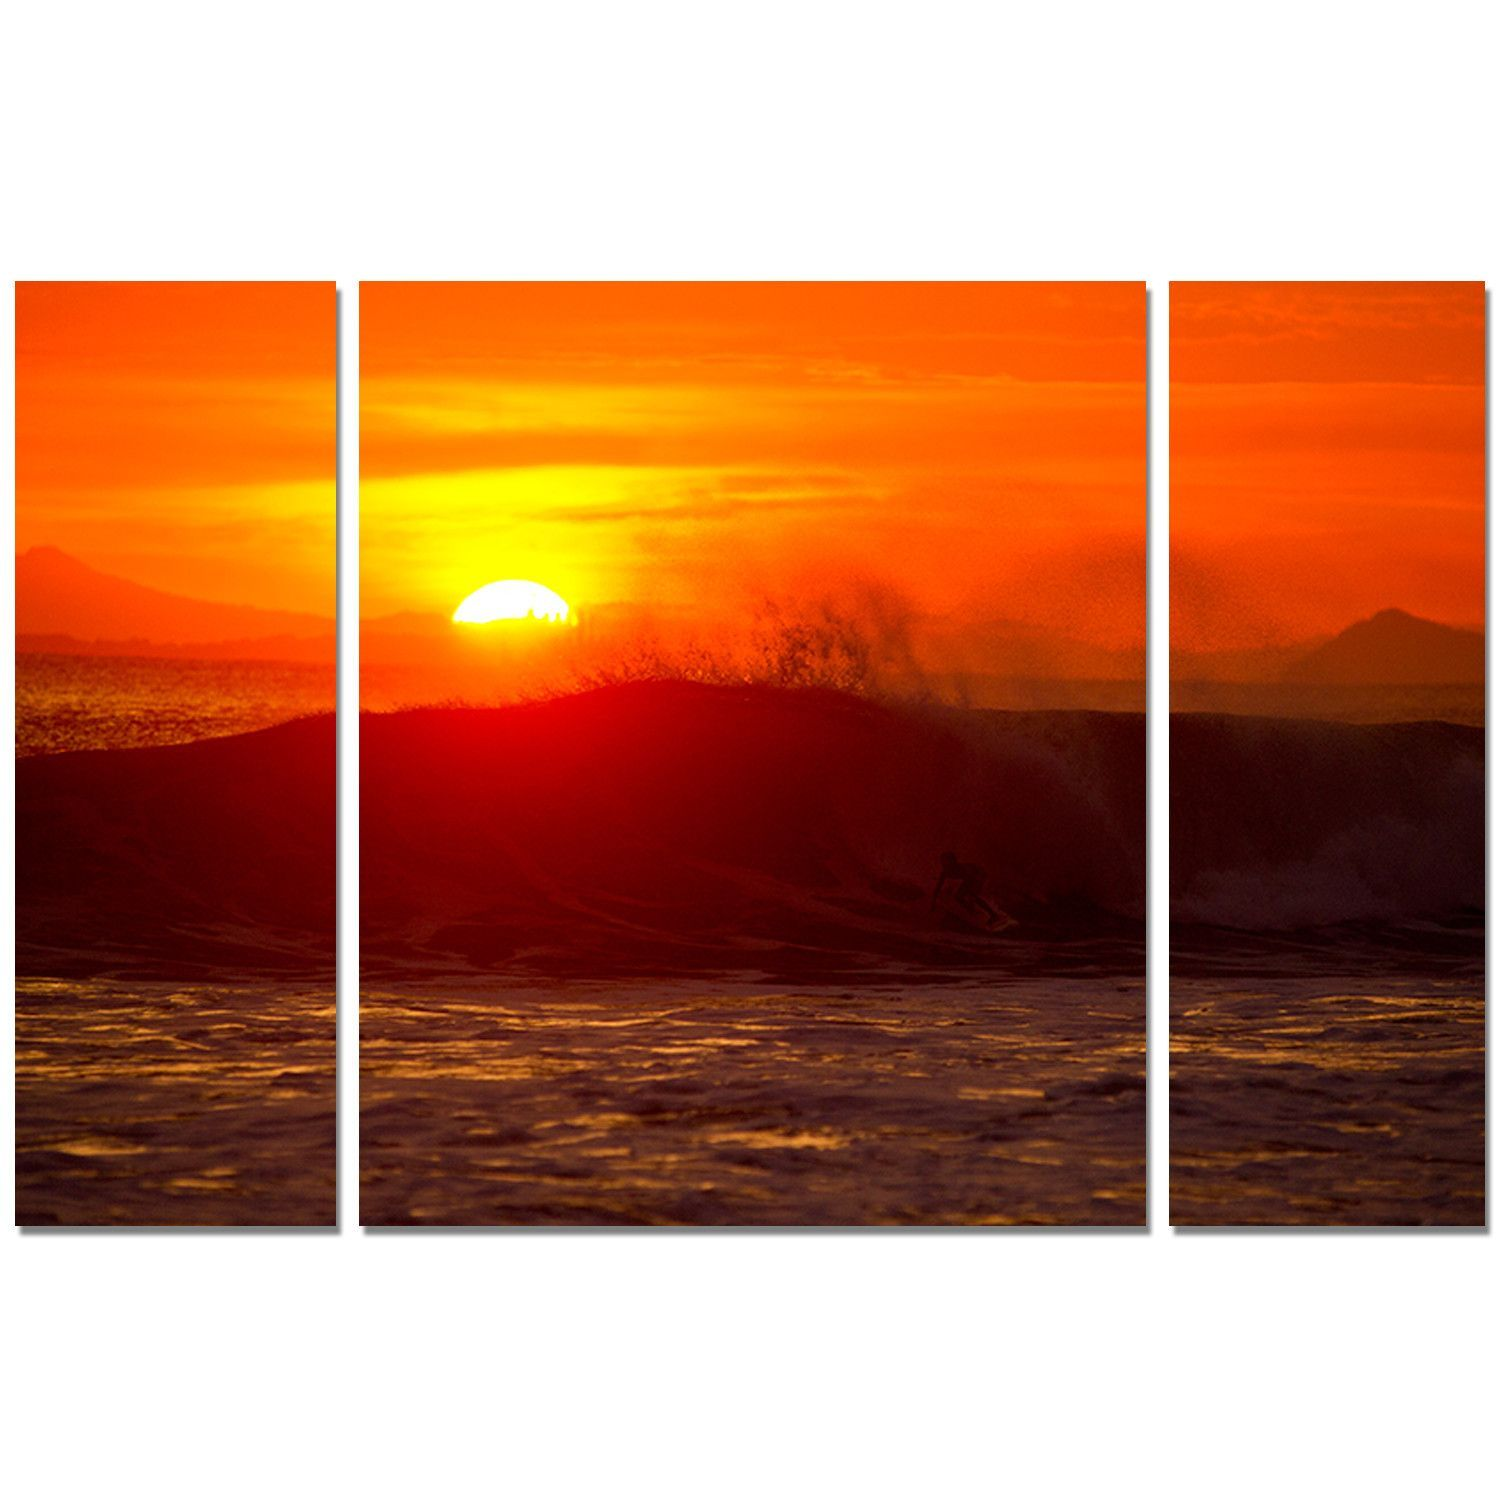 'Sunset' by Nicola Lugo 3 Piece Photographic Printt on Wrapped Canvas Set